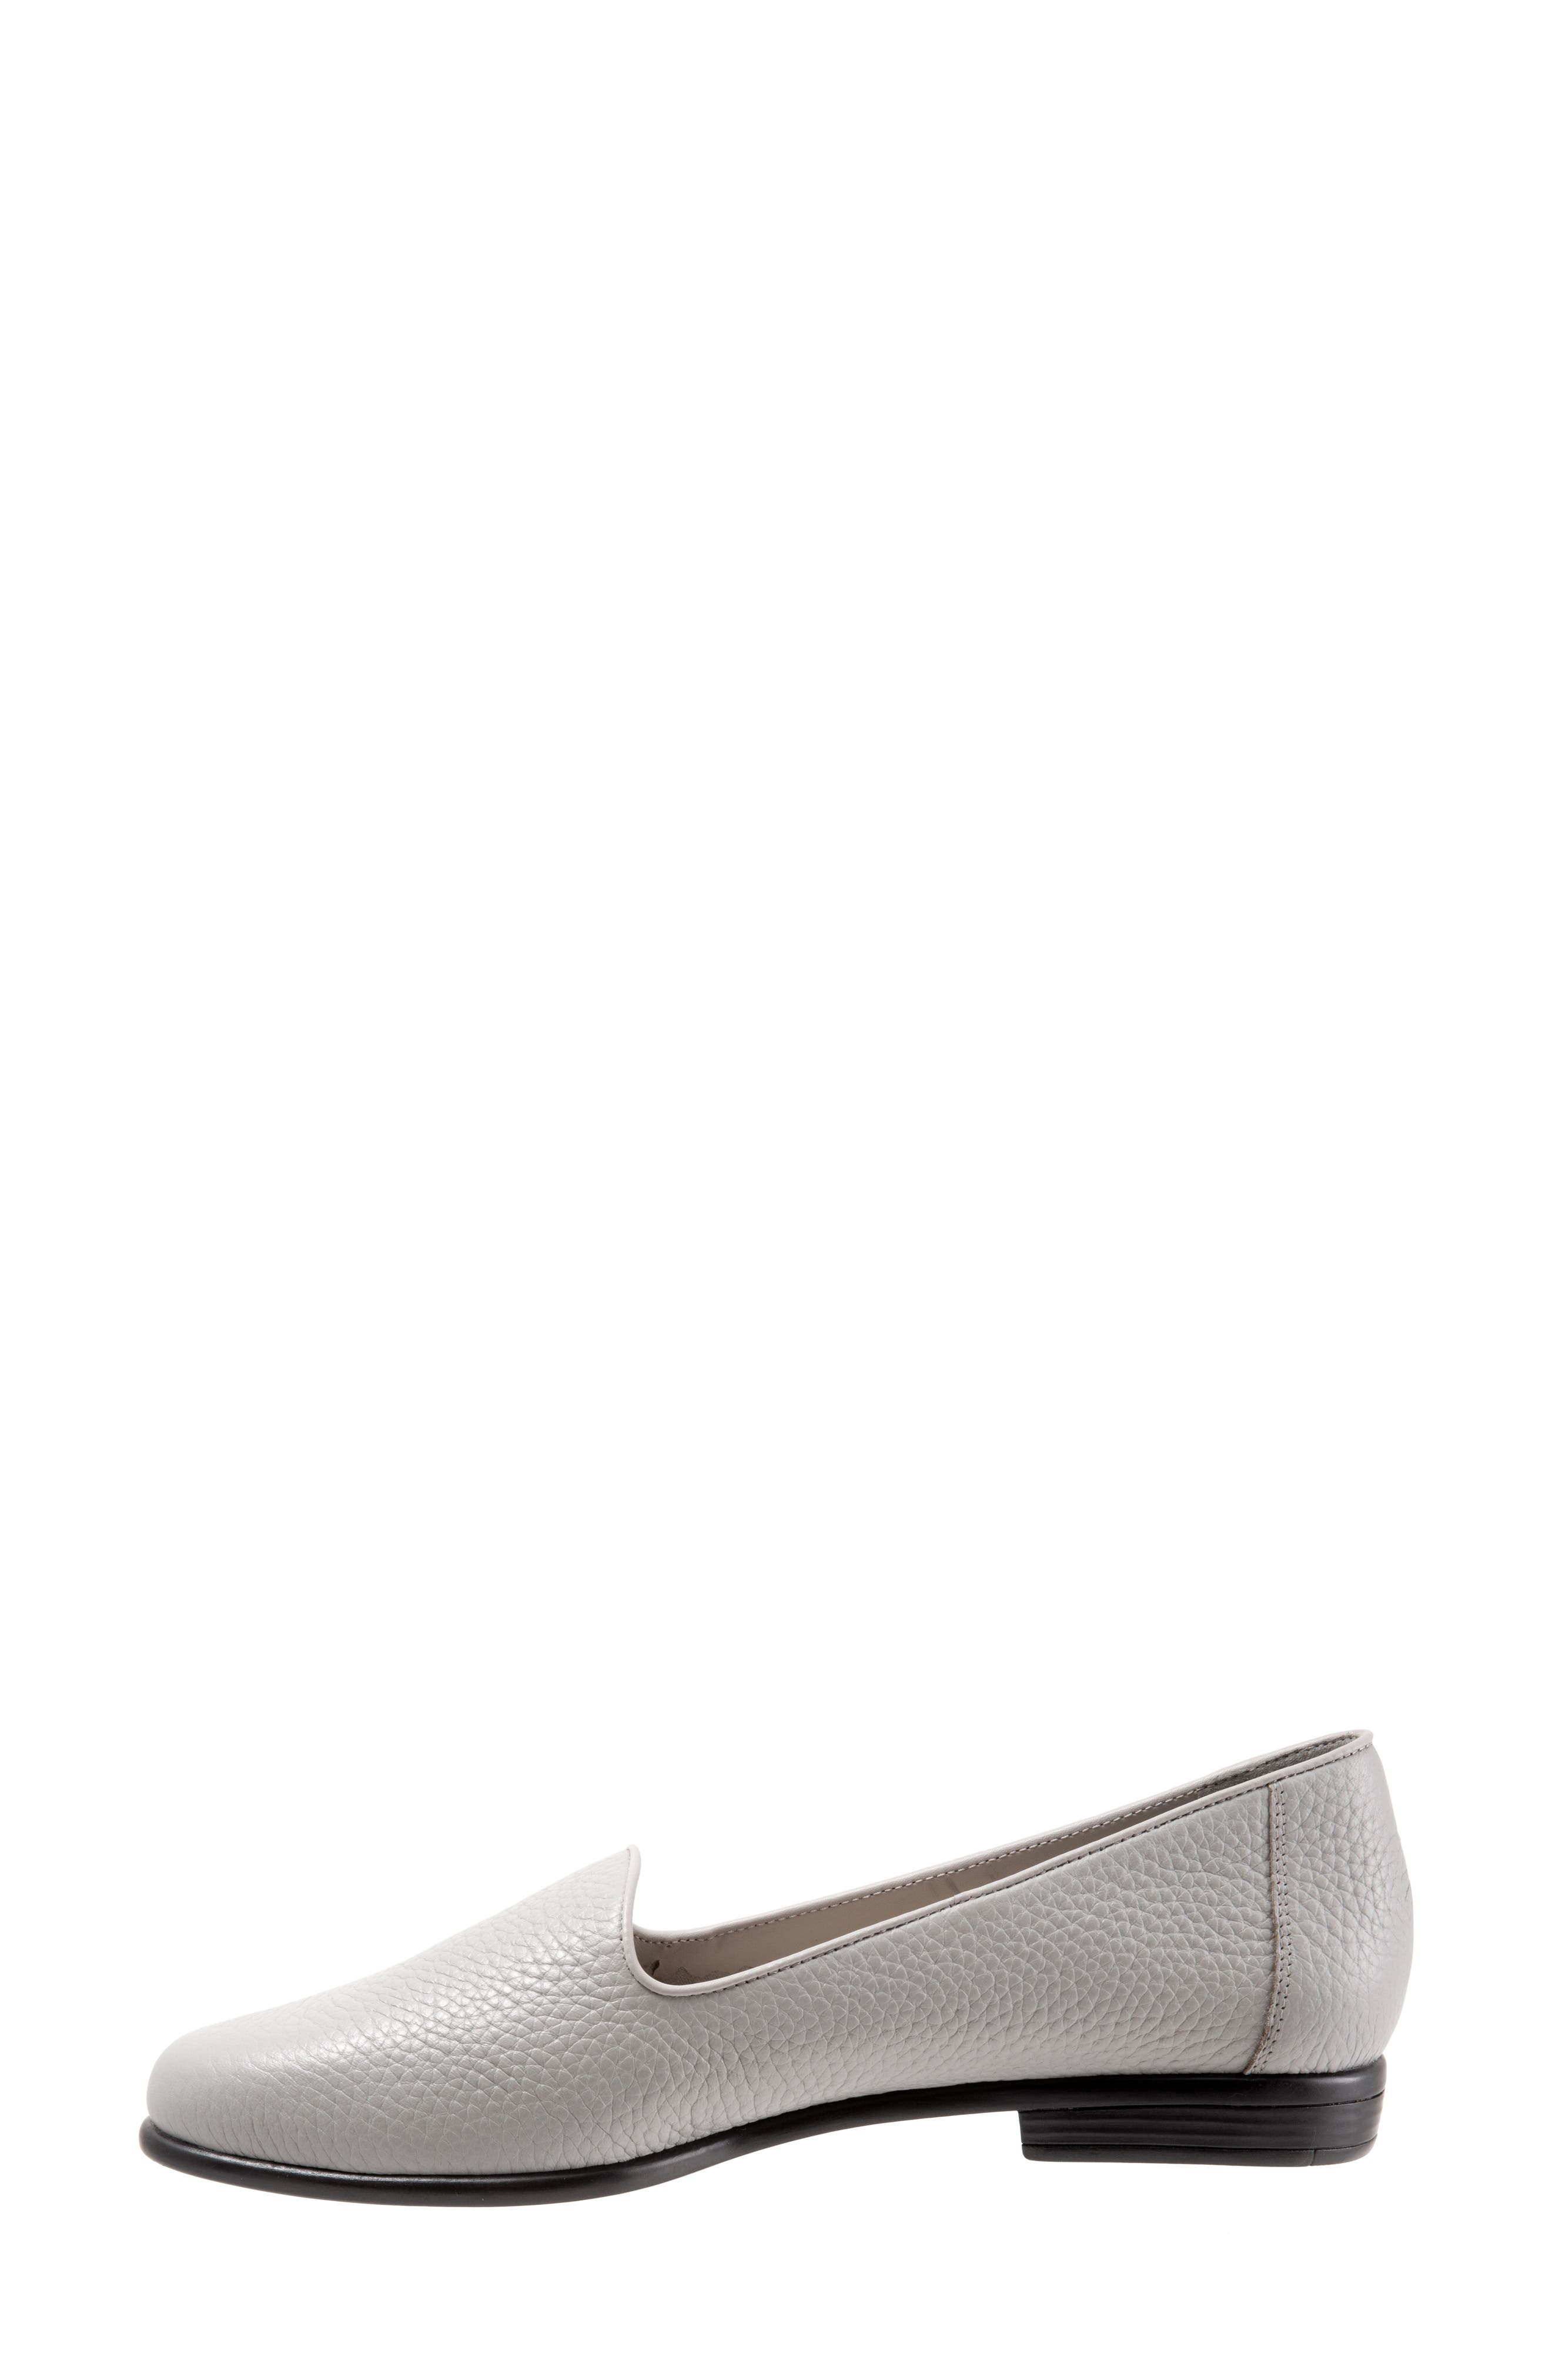 TROTTERS, Liz Loafer, Alternate thumbnail 8, color, GREY LEATHER